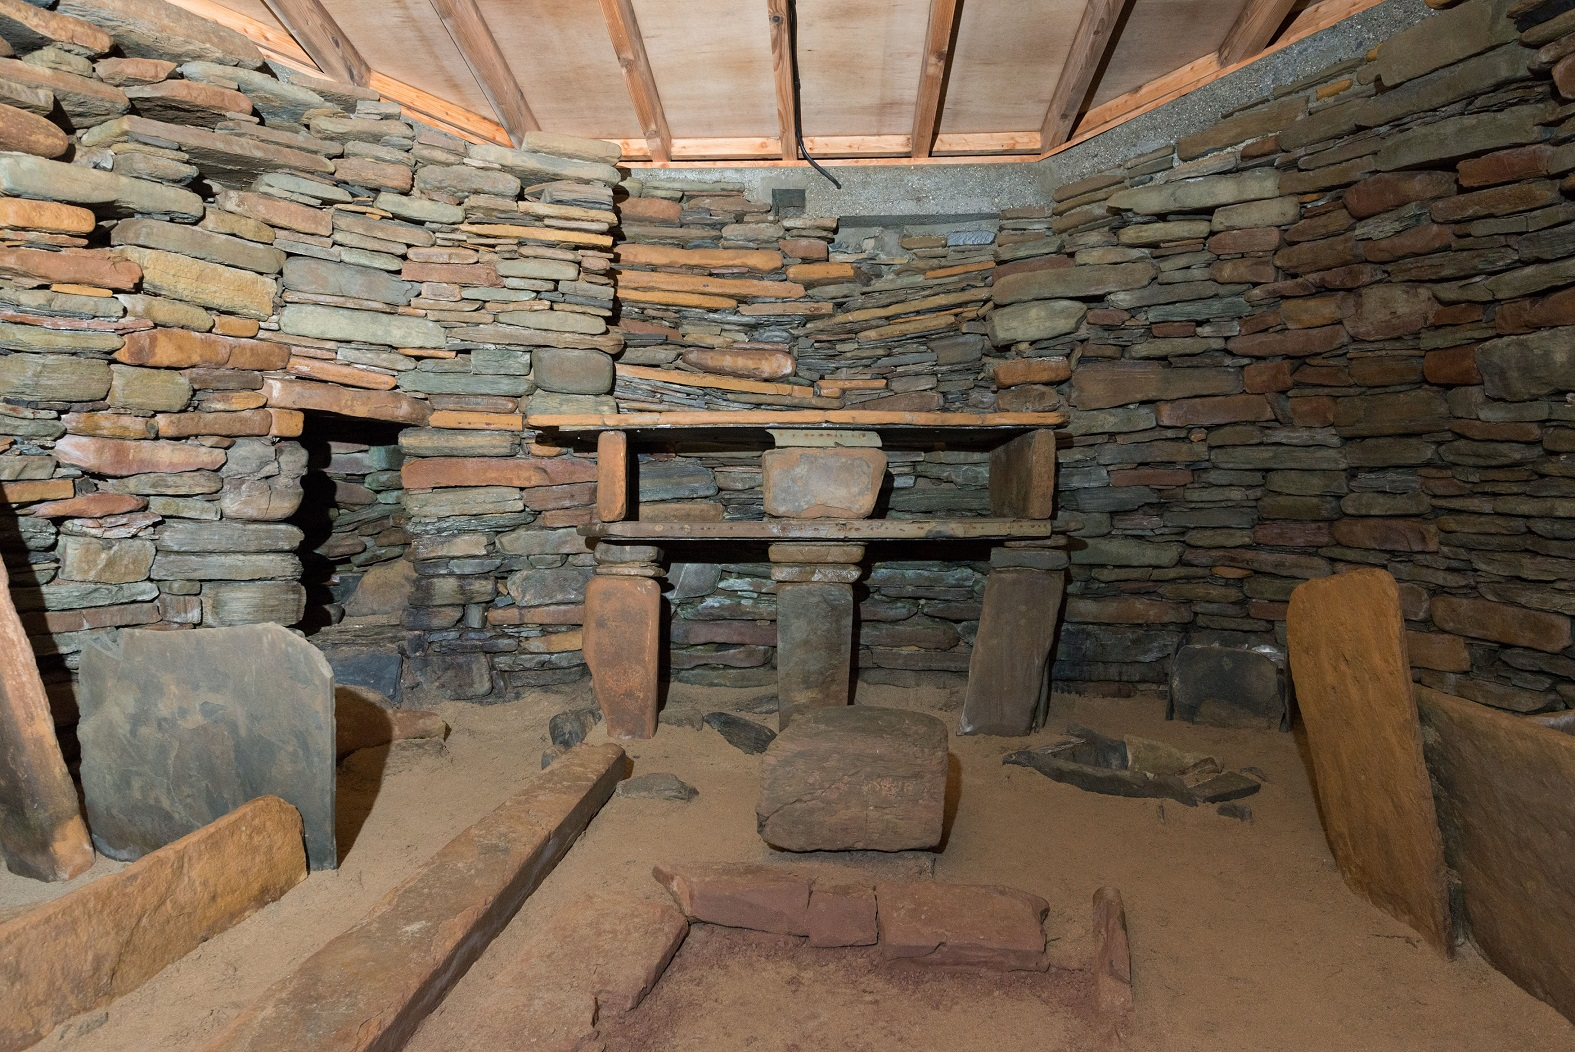 View of house 7 at Skara Brae